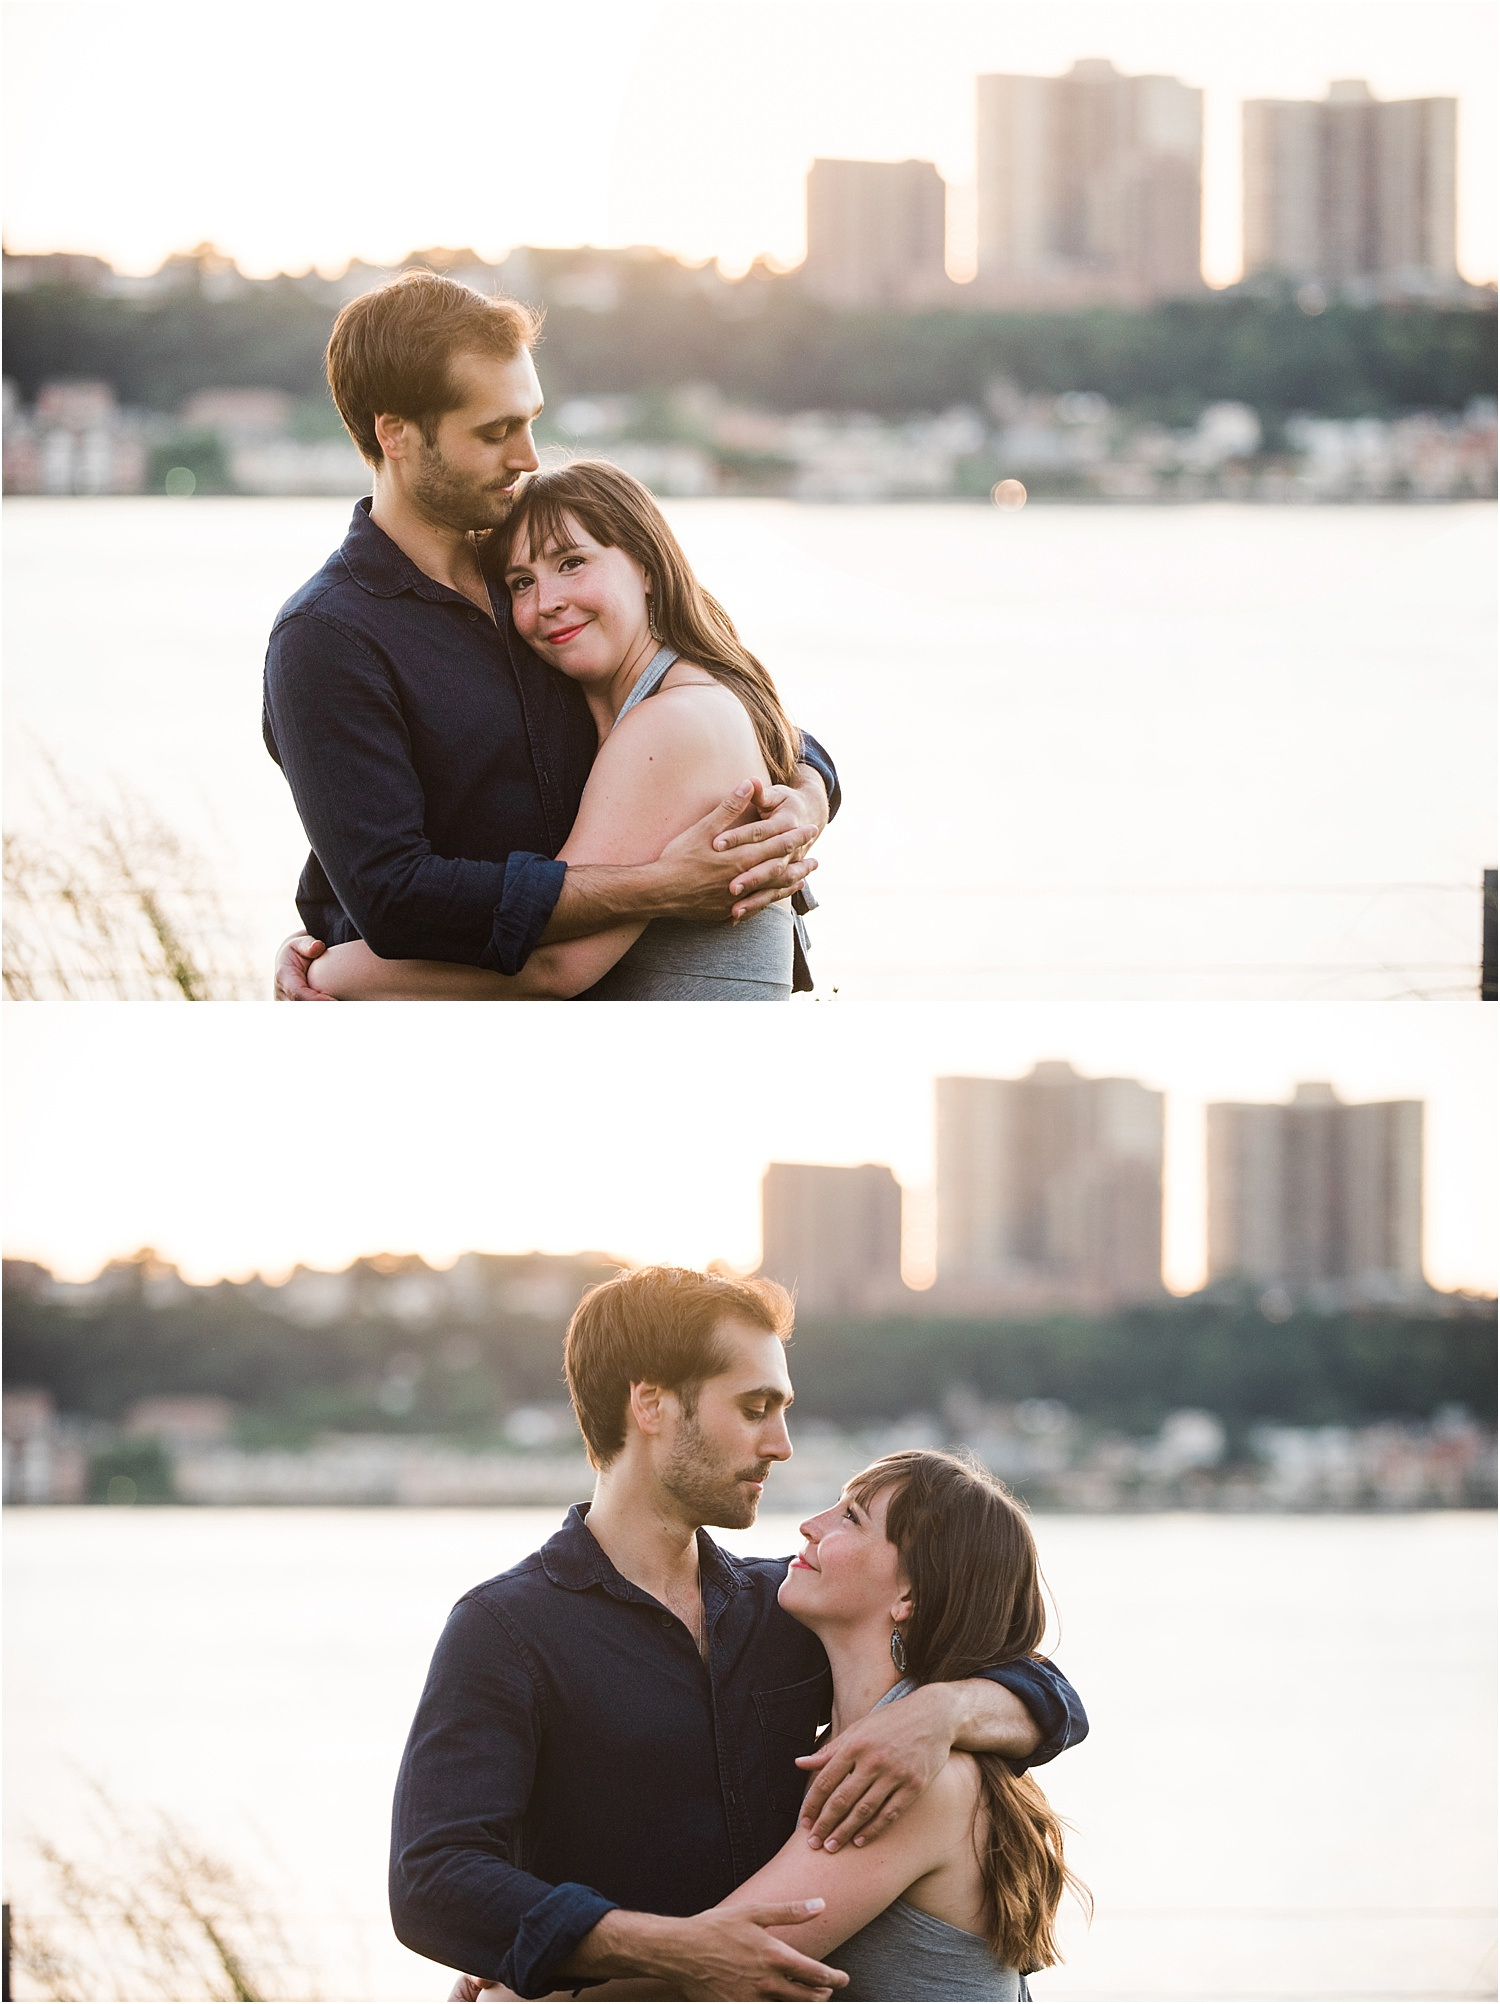 NYC_Engagement_Session_Harlem_Engaged_Photography_005.jpg